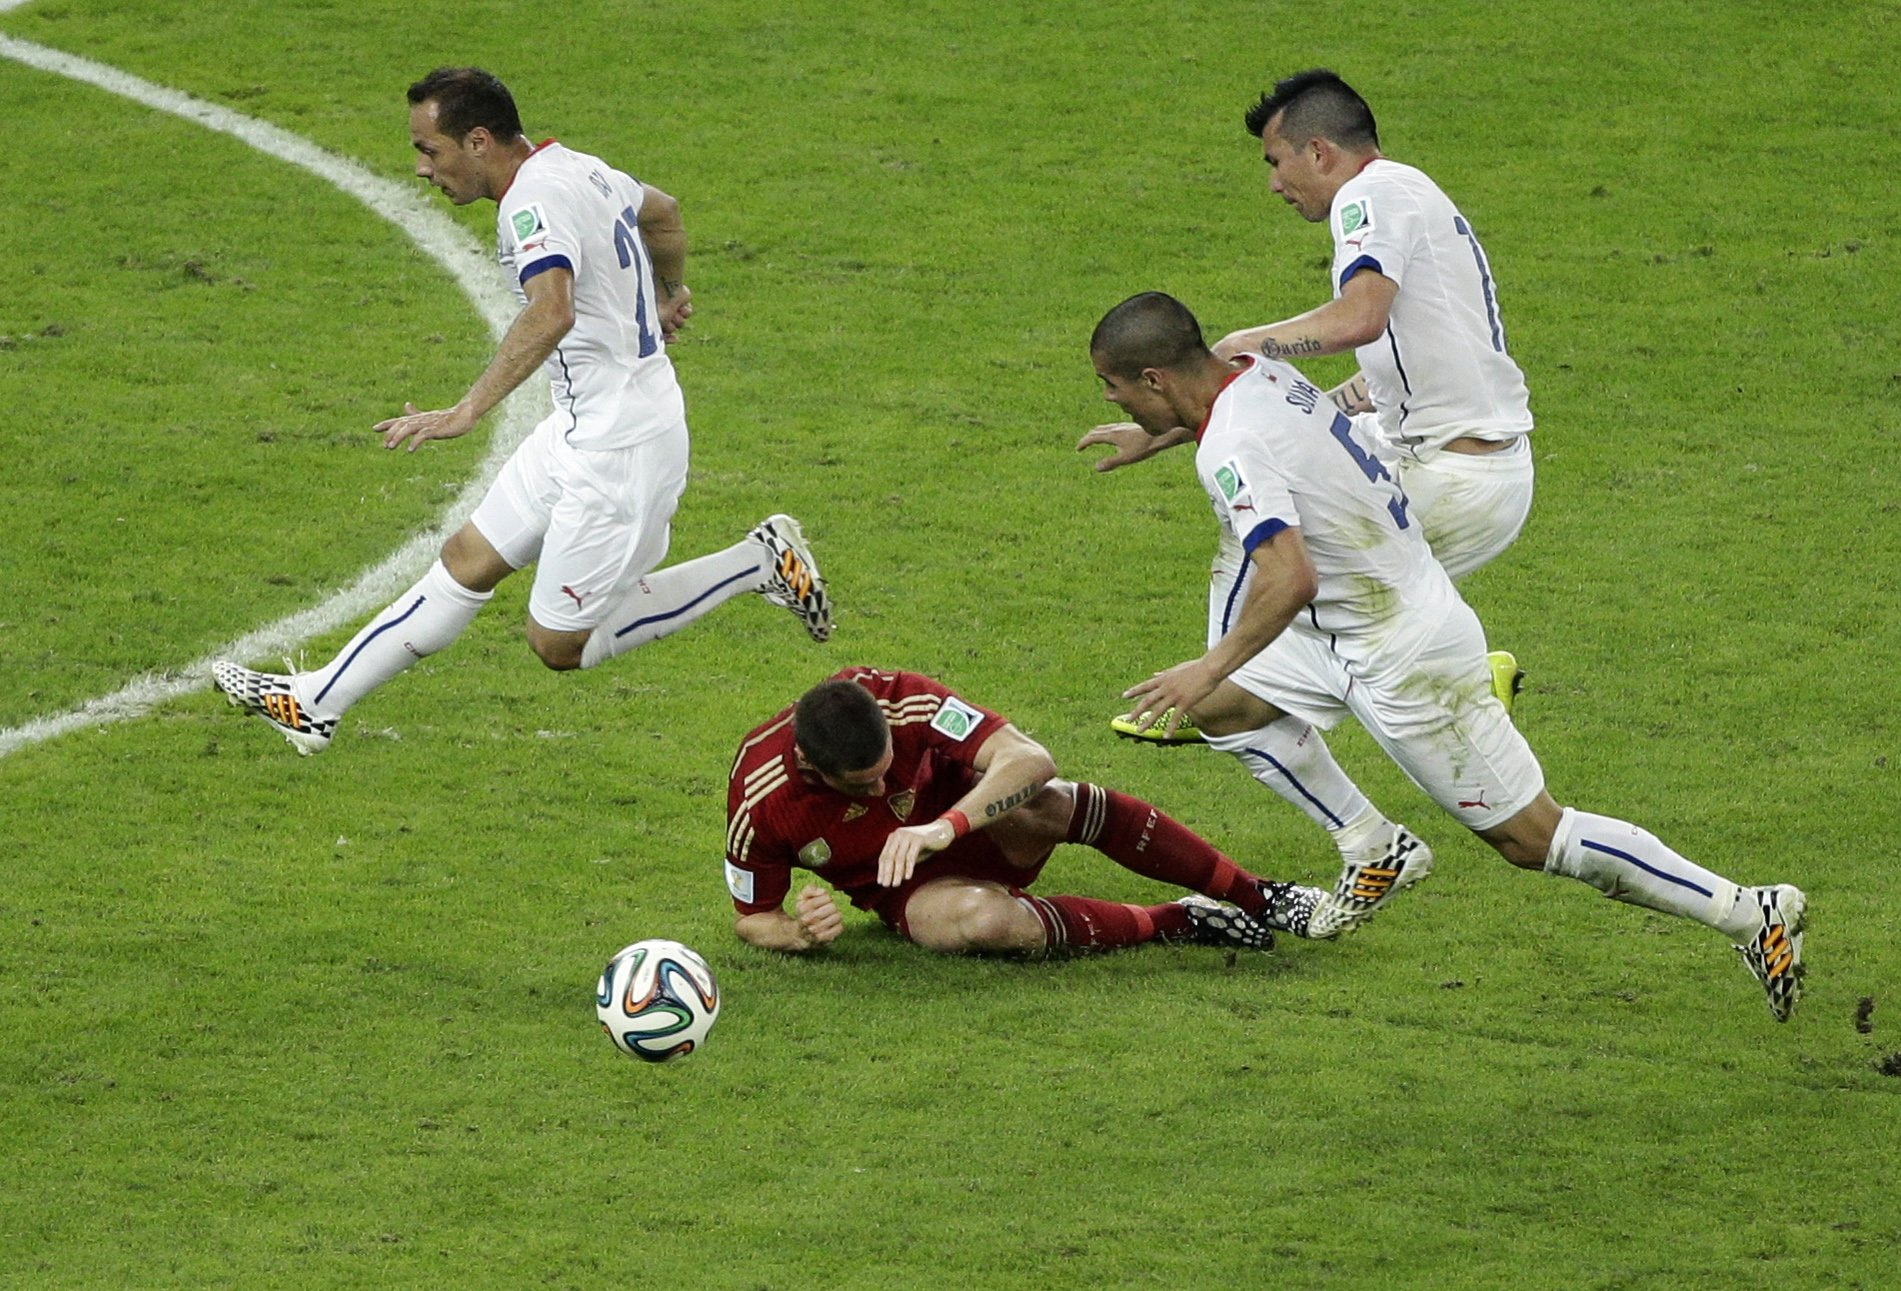 Chile's Eugenio Mena, Francisco Silva and Gary Medel, from left, jump over Spain's Fernando Torres during the group B World Cup soccer match between Spain and Chile at the Maracana Stadium in Rio de Janeiro on June 18, 2014.